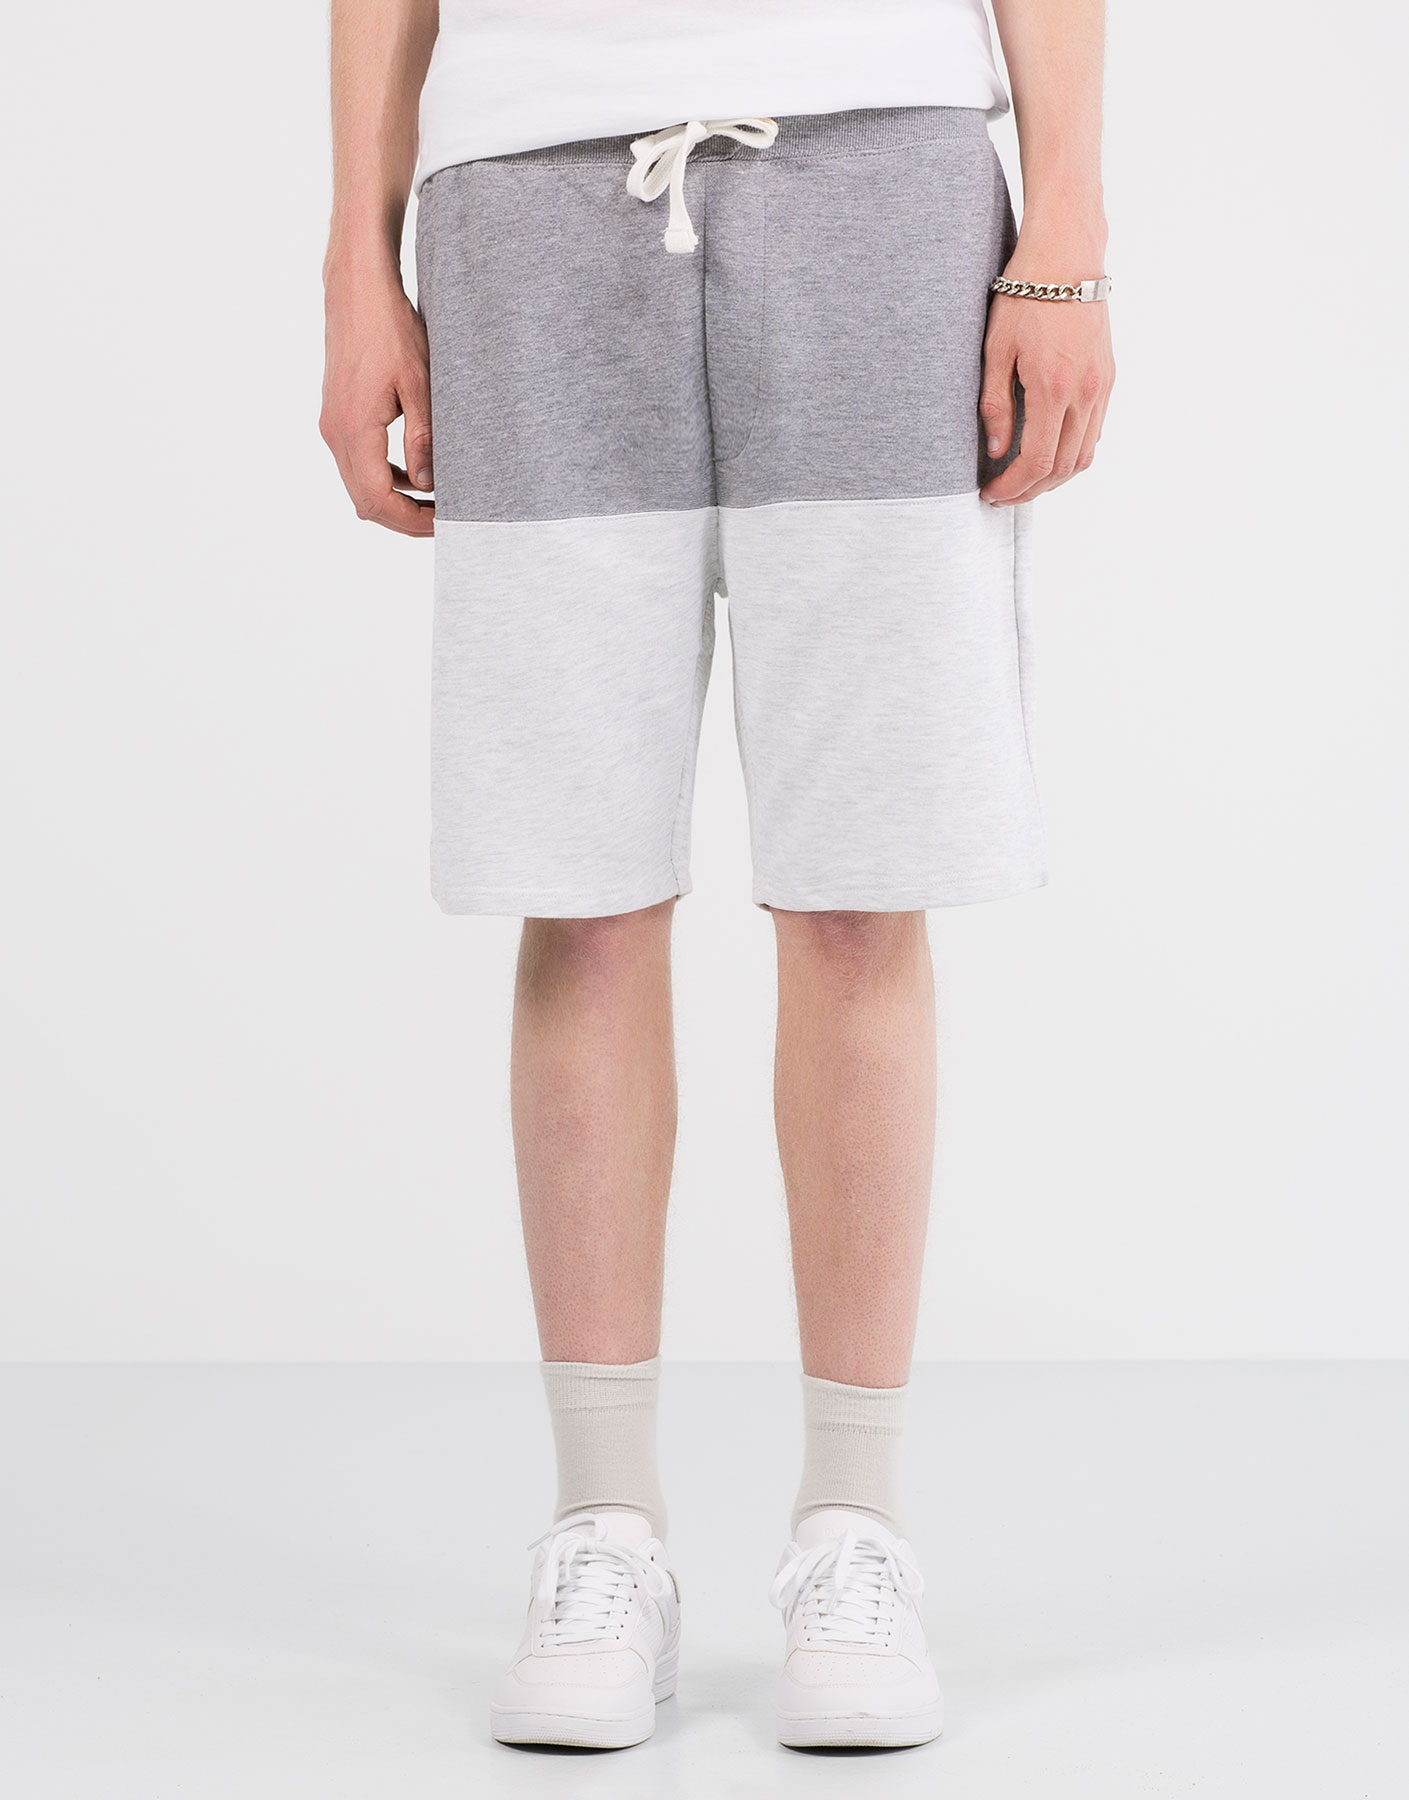 Jogging bermuda shorts with contrasting panels